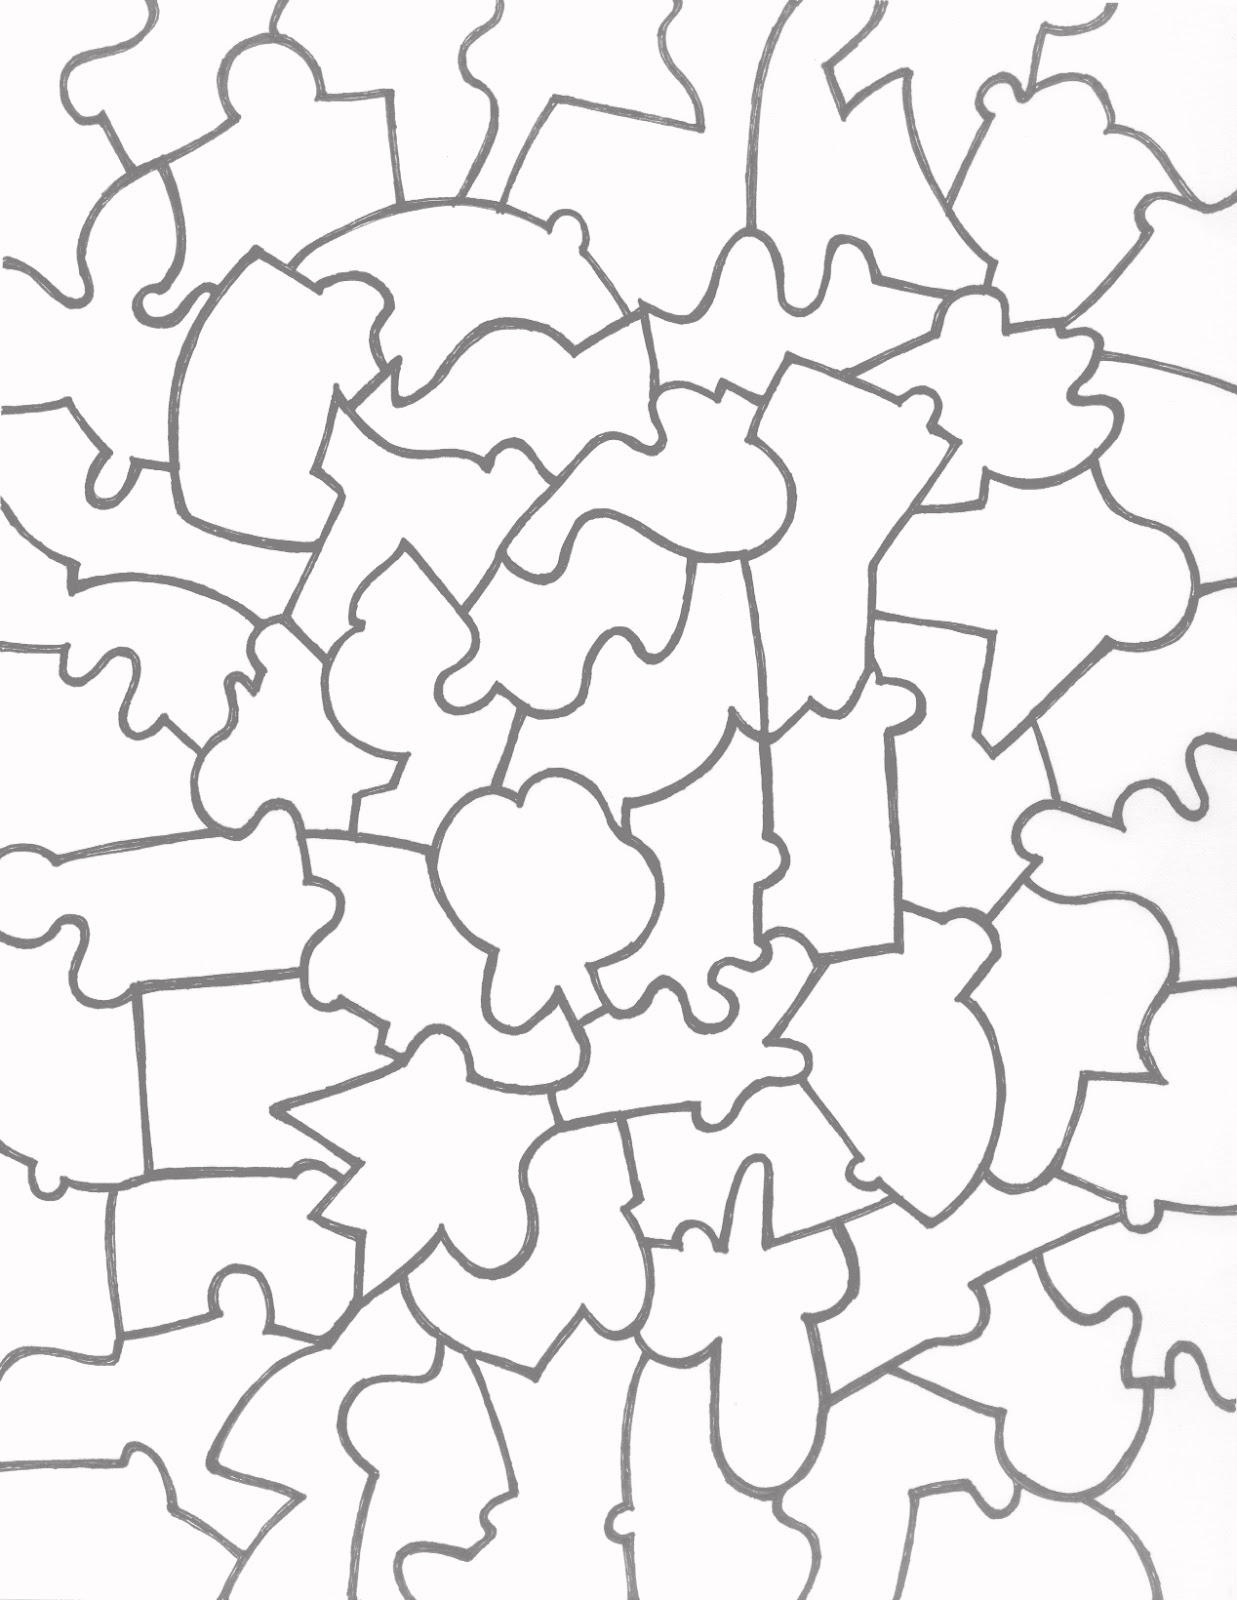 Paper Jigsaw Puzzle Templates